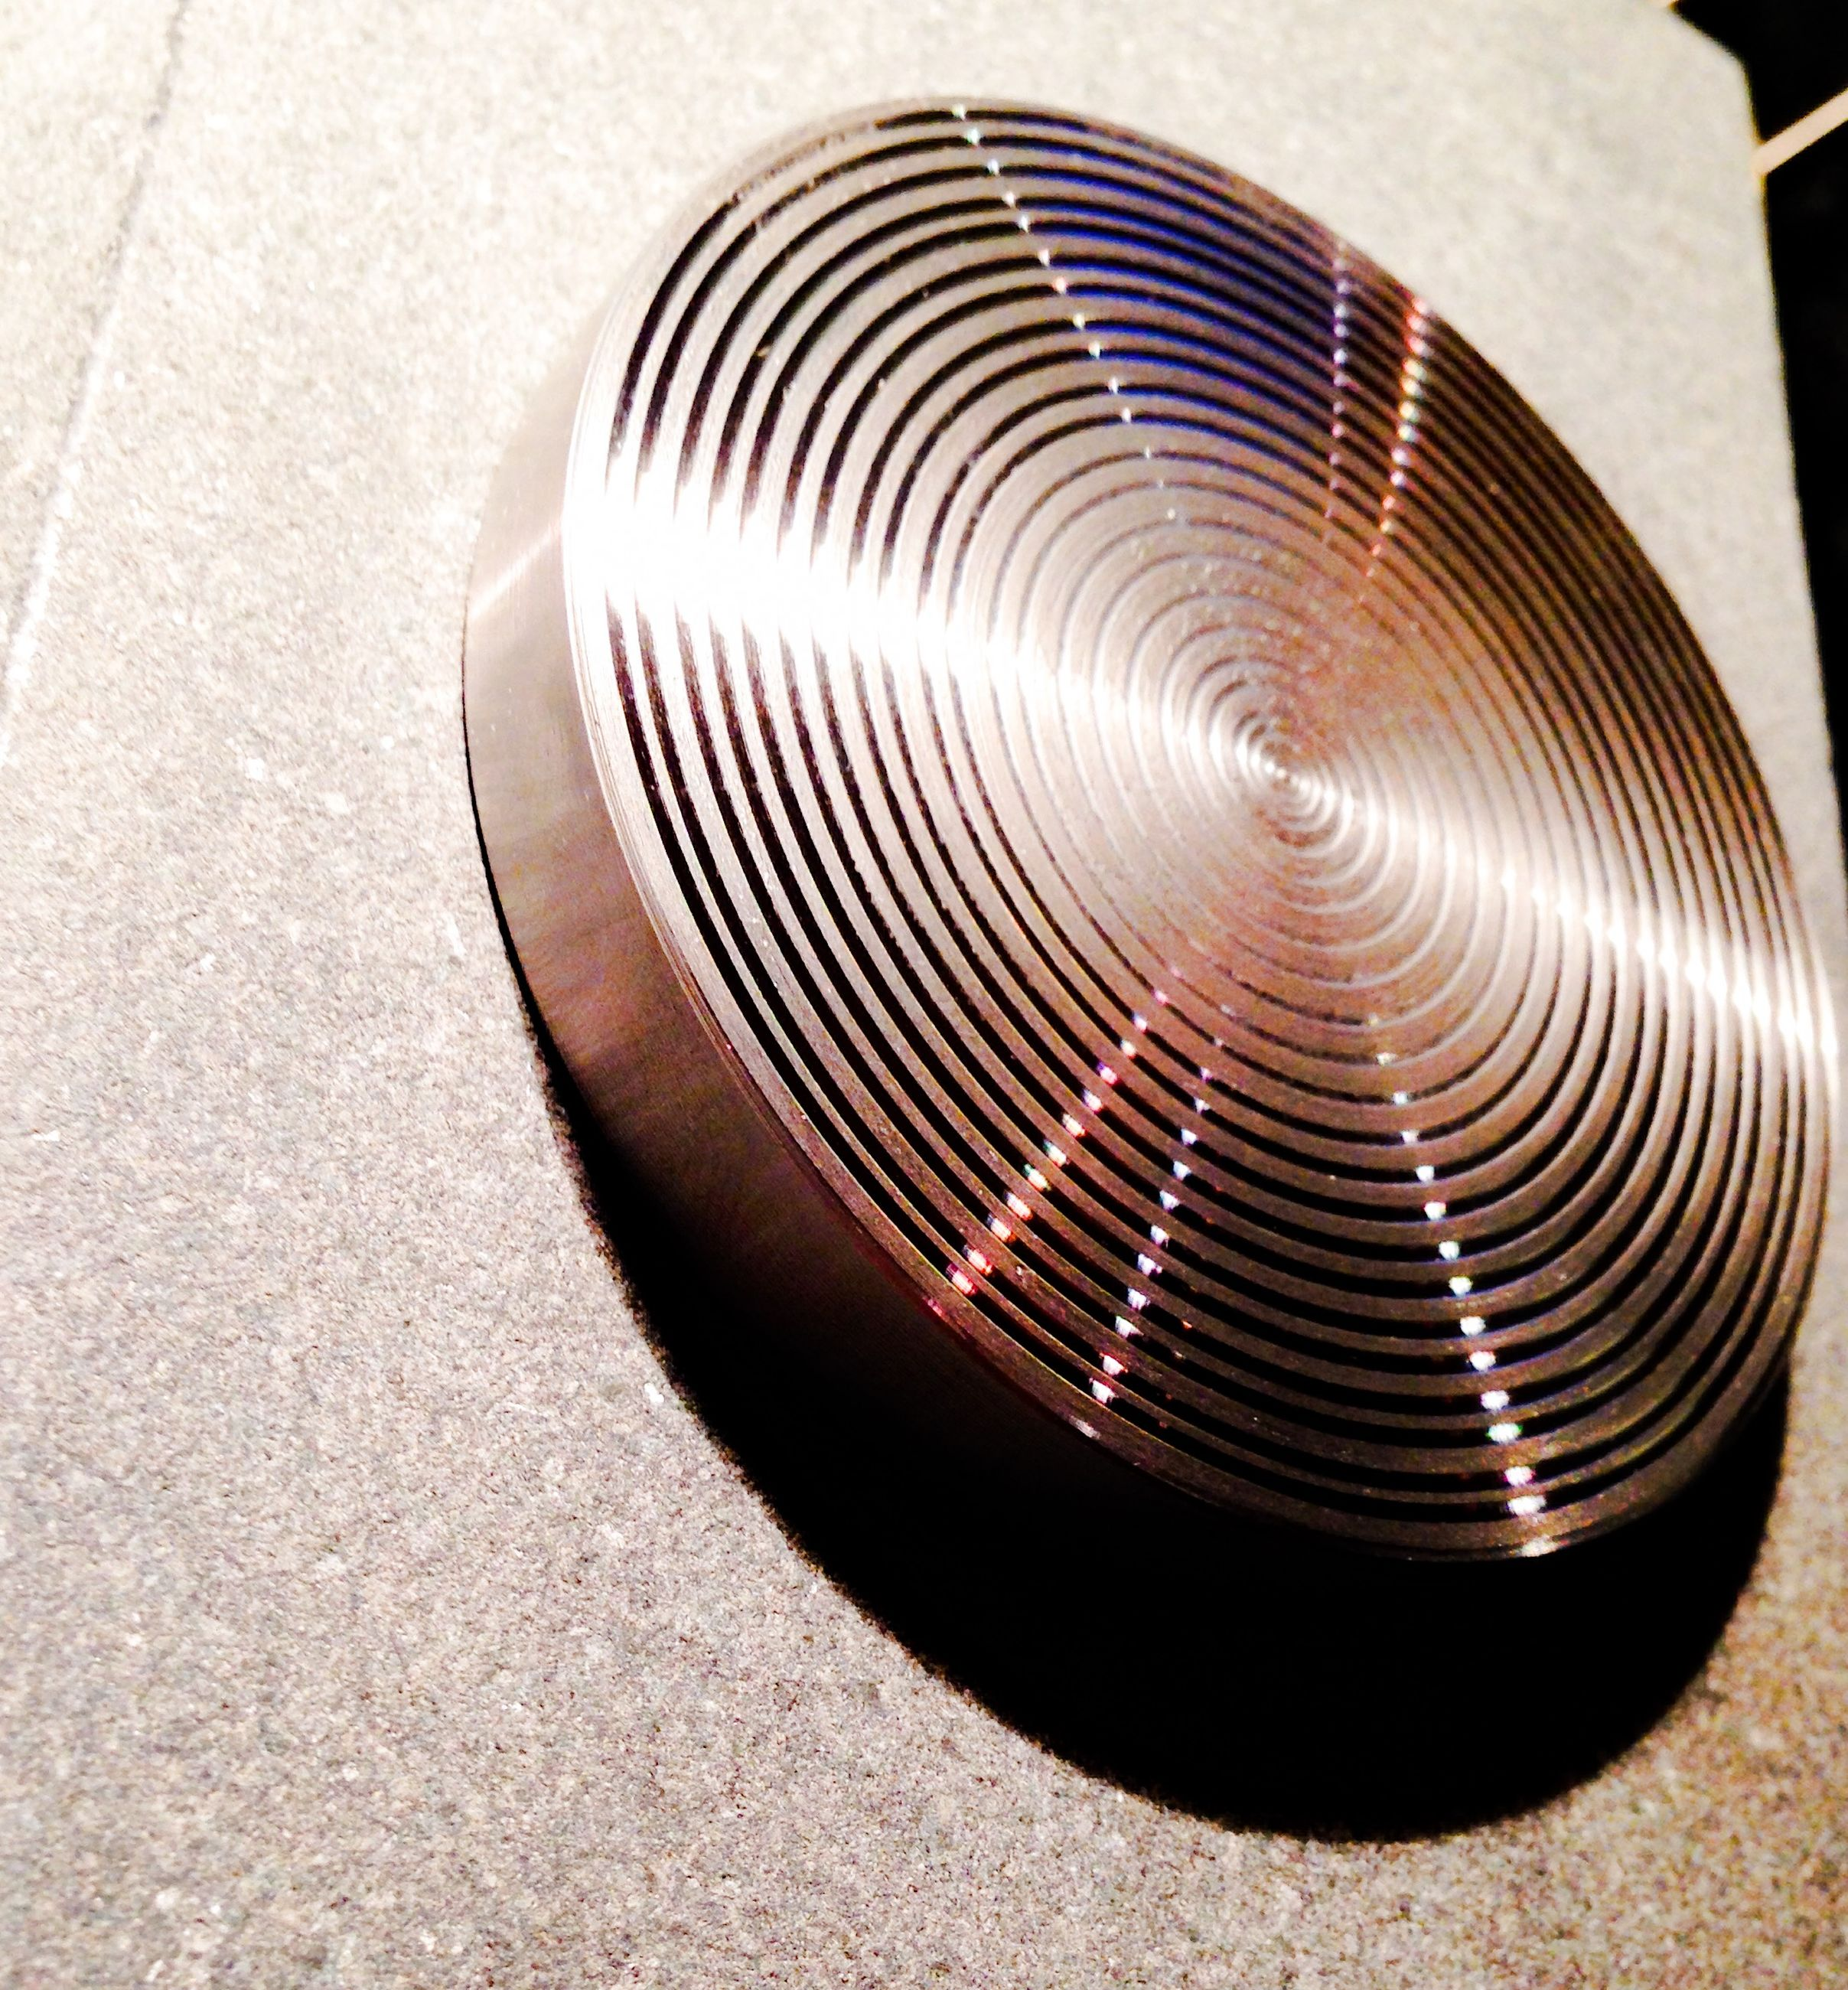 indoors, high angle view, still life, circle, close-up, pattern, no people, metal, street, spiral, empty, single object, shape, in a row, metallic, absence, shadow, curve, day, table